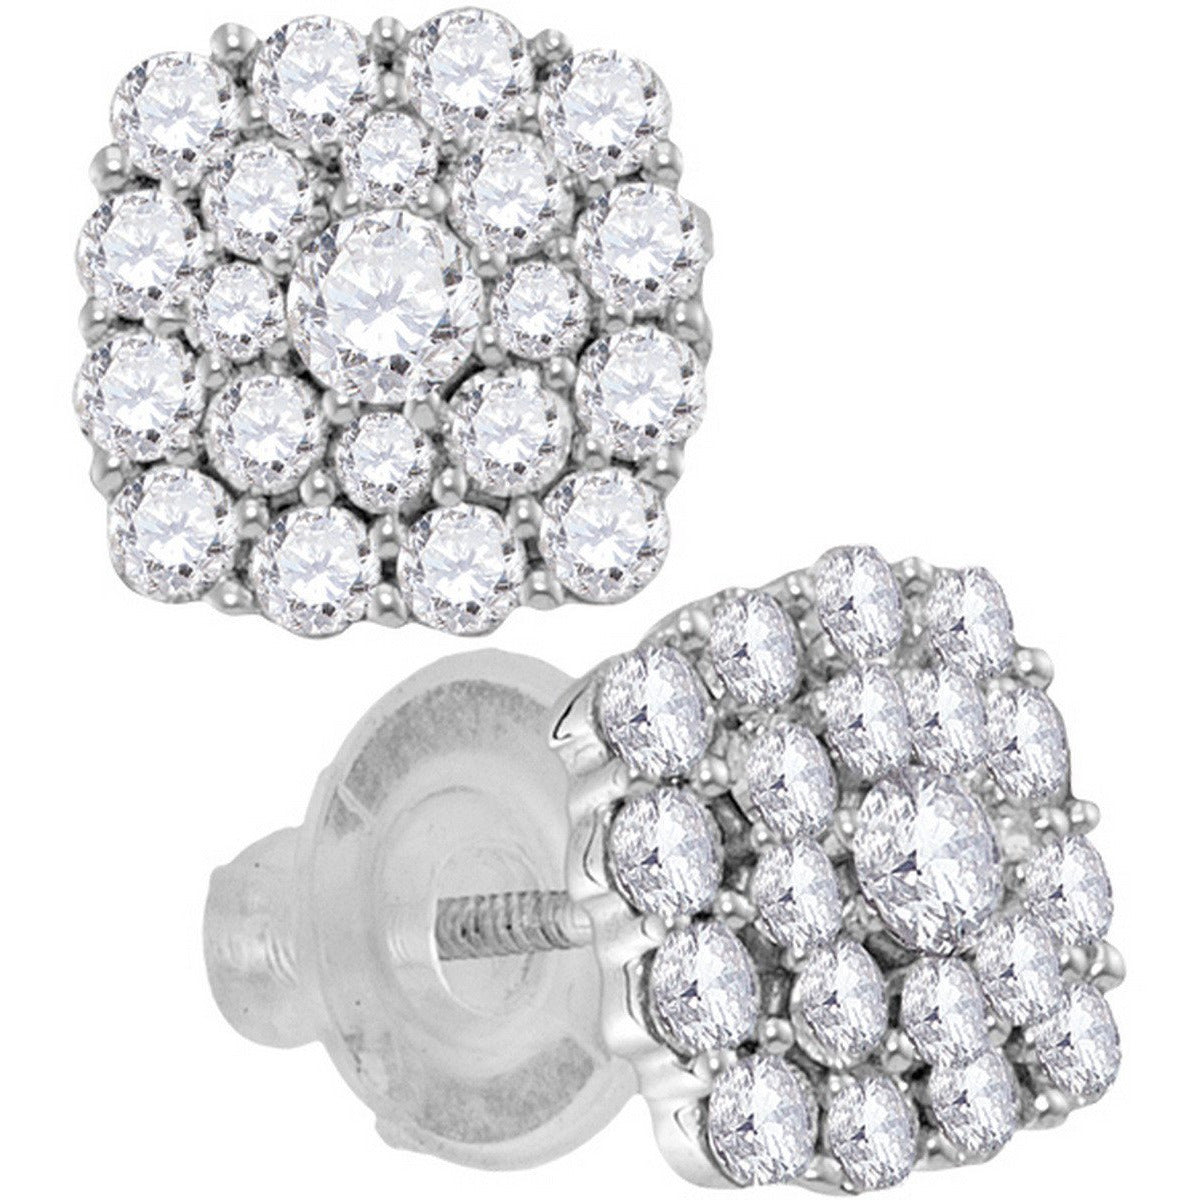 14kt White Gold Womens Round Diamond Cluster Earrings 1.00 Cttw 115449 - shirin-diamonds